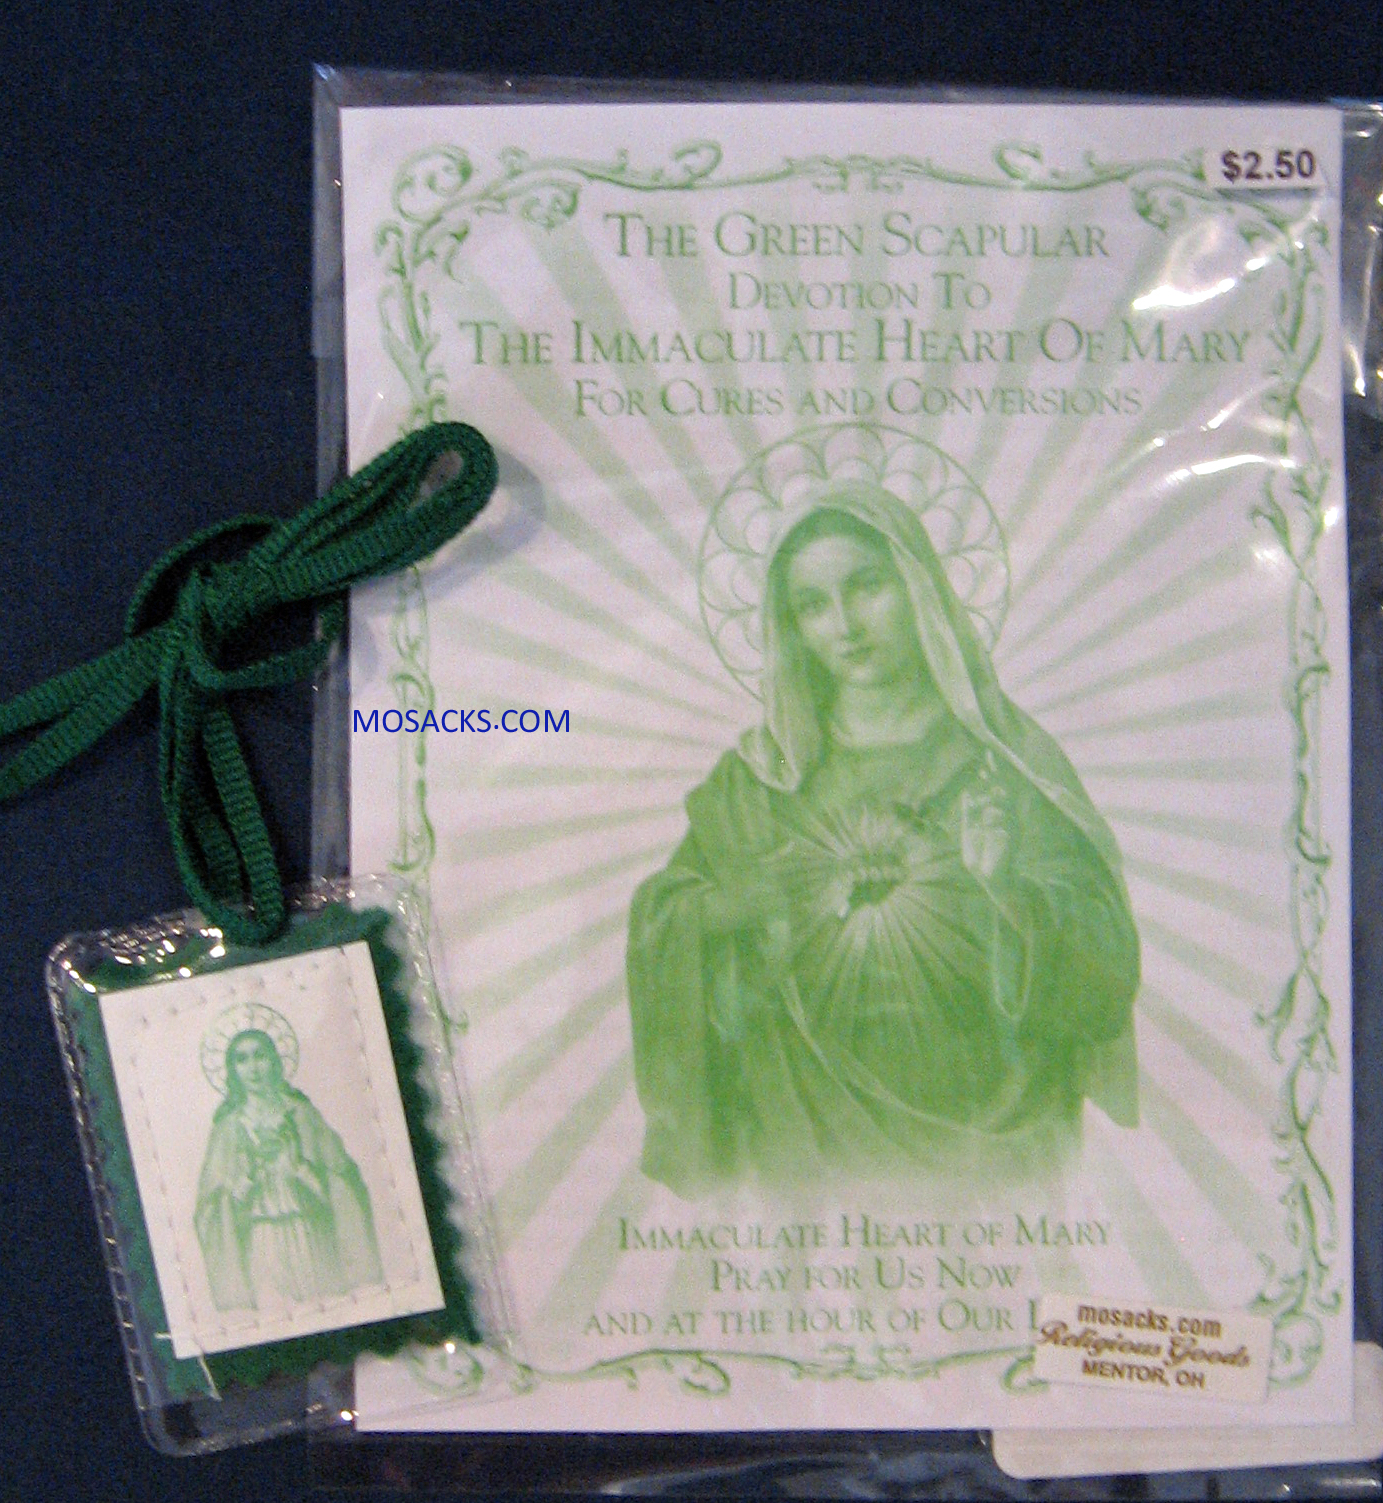 Green Scapular in Soft Plastic Case Devotion To Immaculate Heart 12-1506